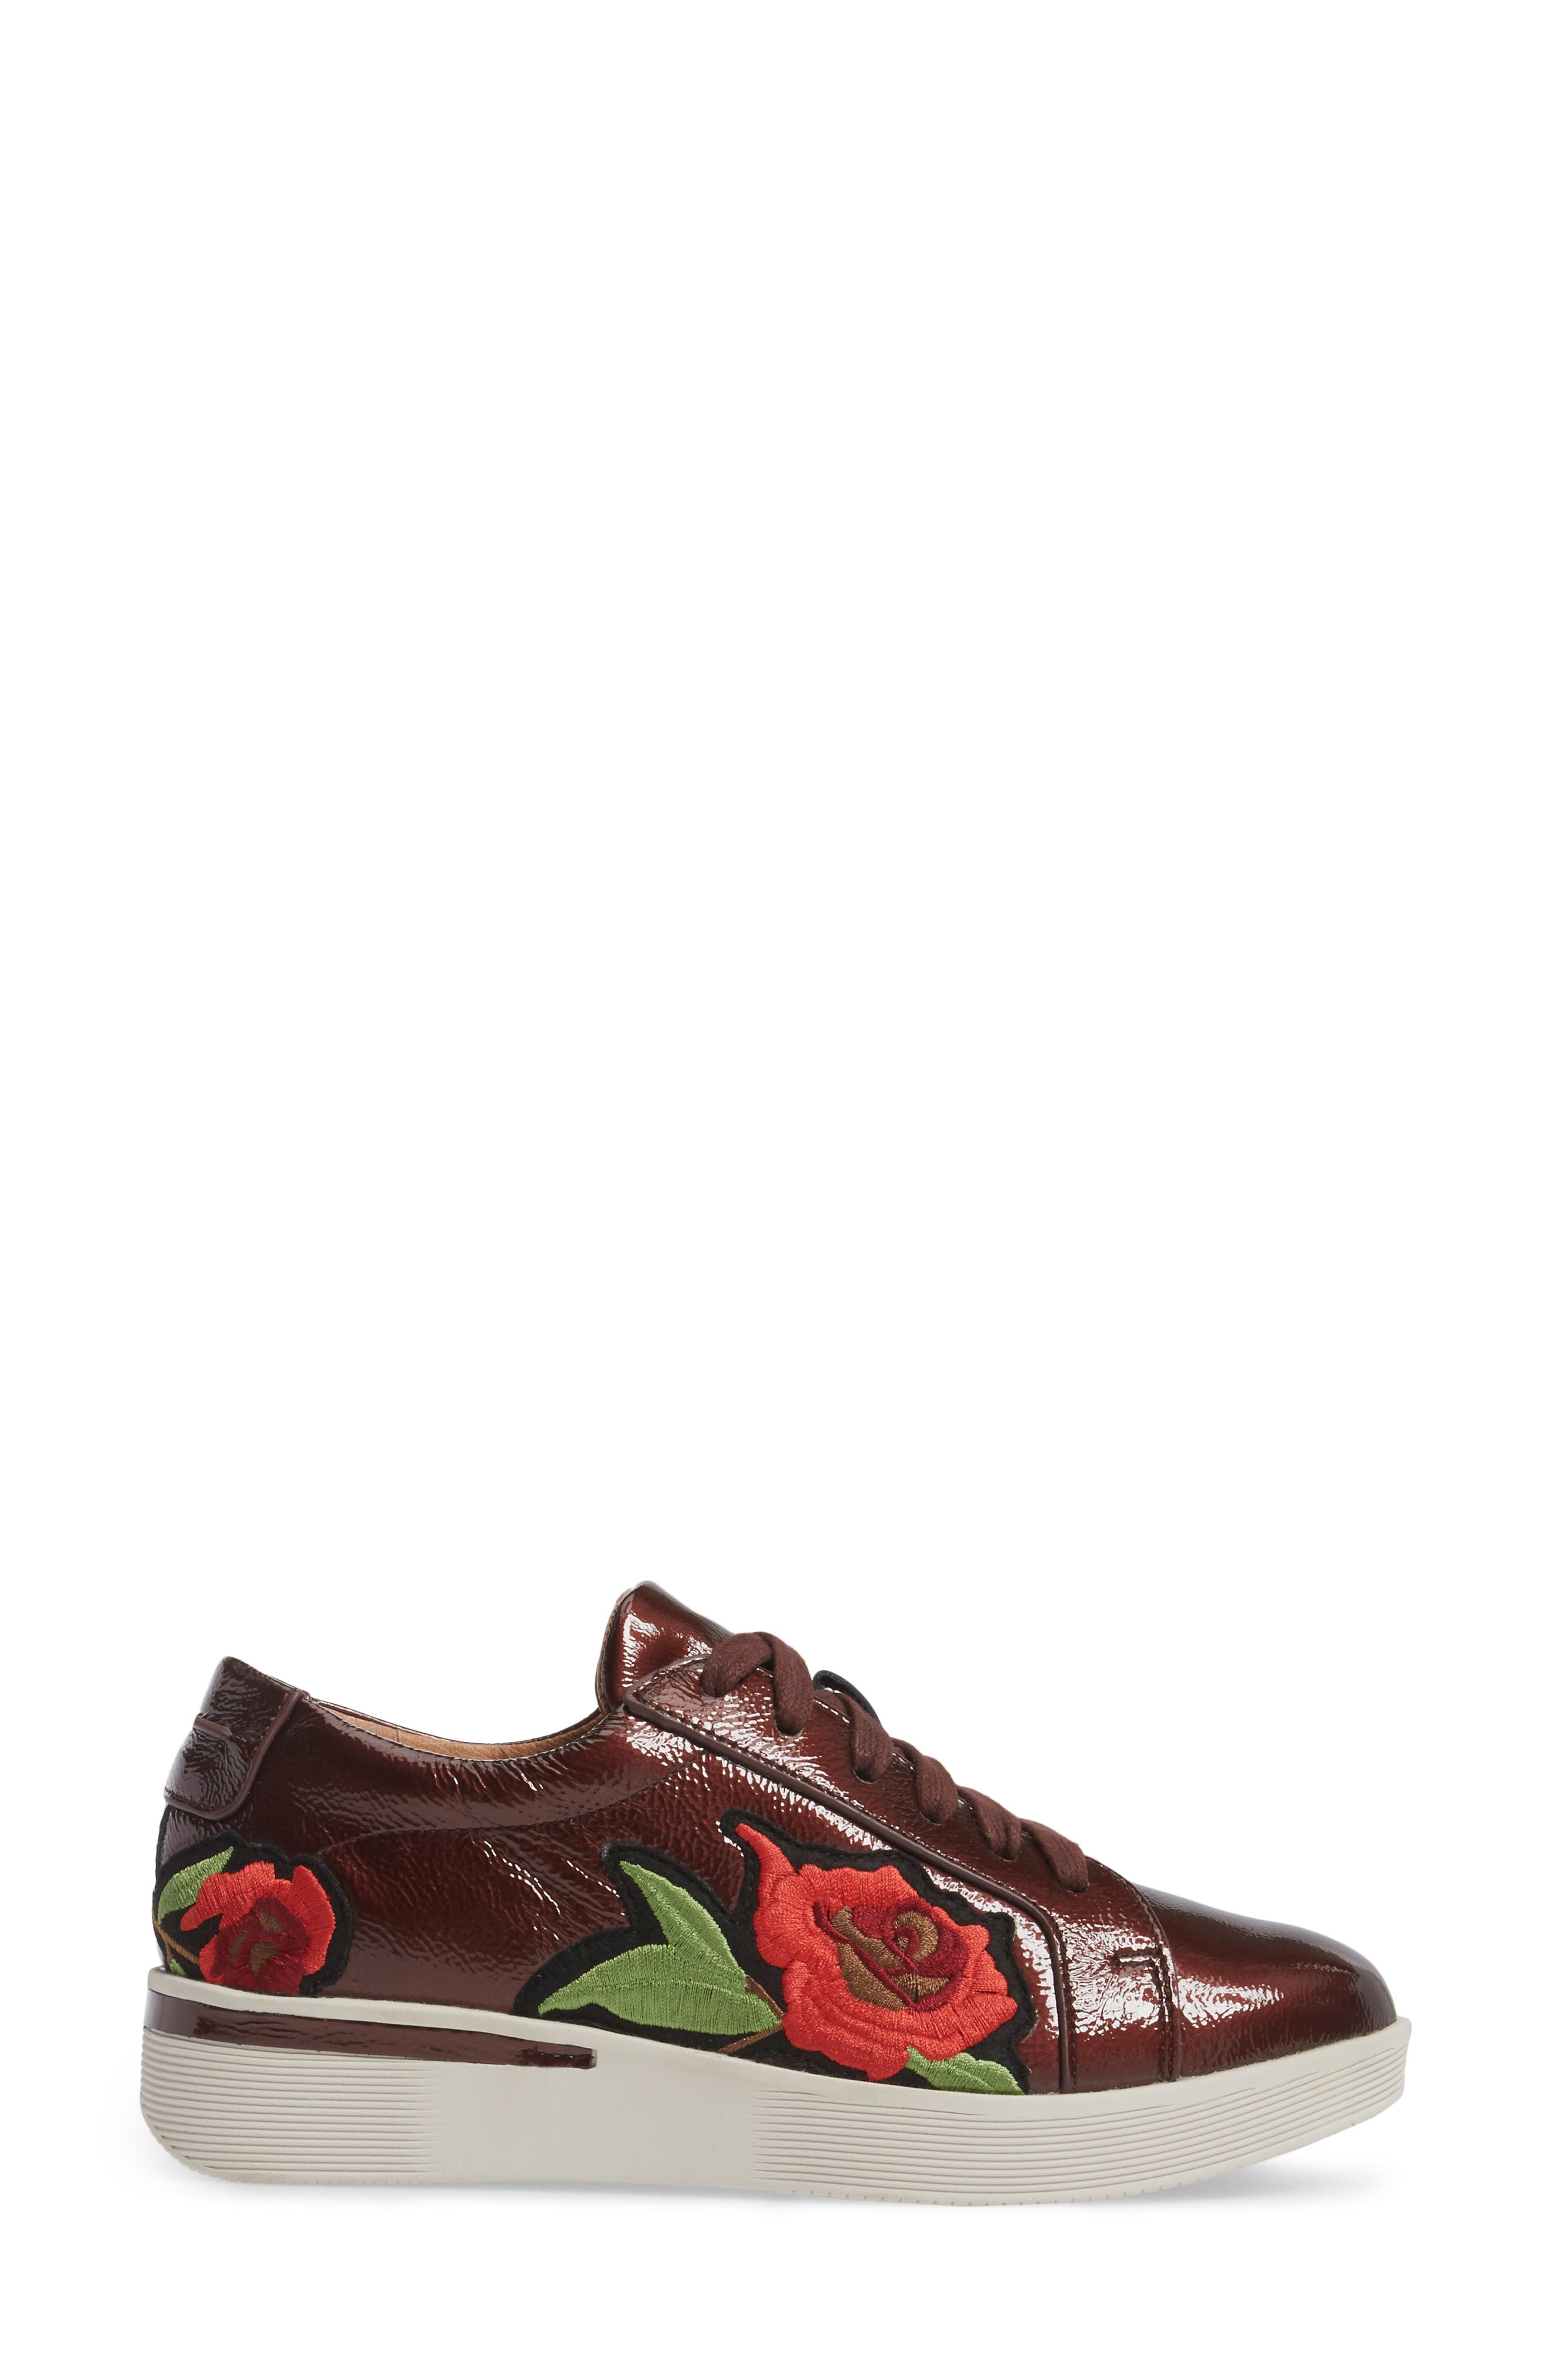 Gentle Soles Haddie Rose Sneaker,                             Alternate thumbnail 3, color,                             Wine Patent Leather